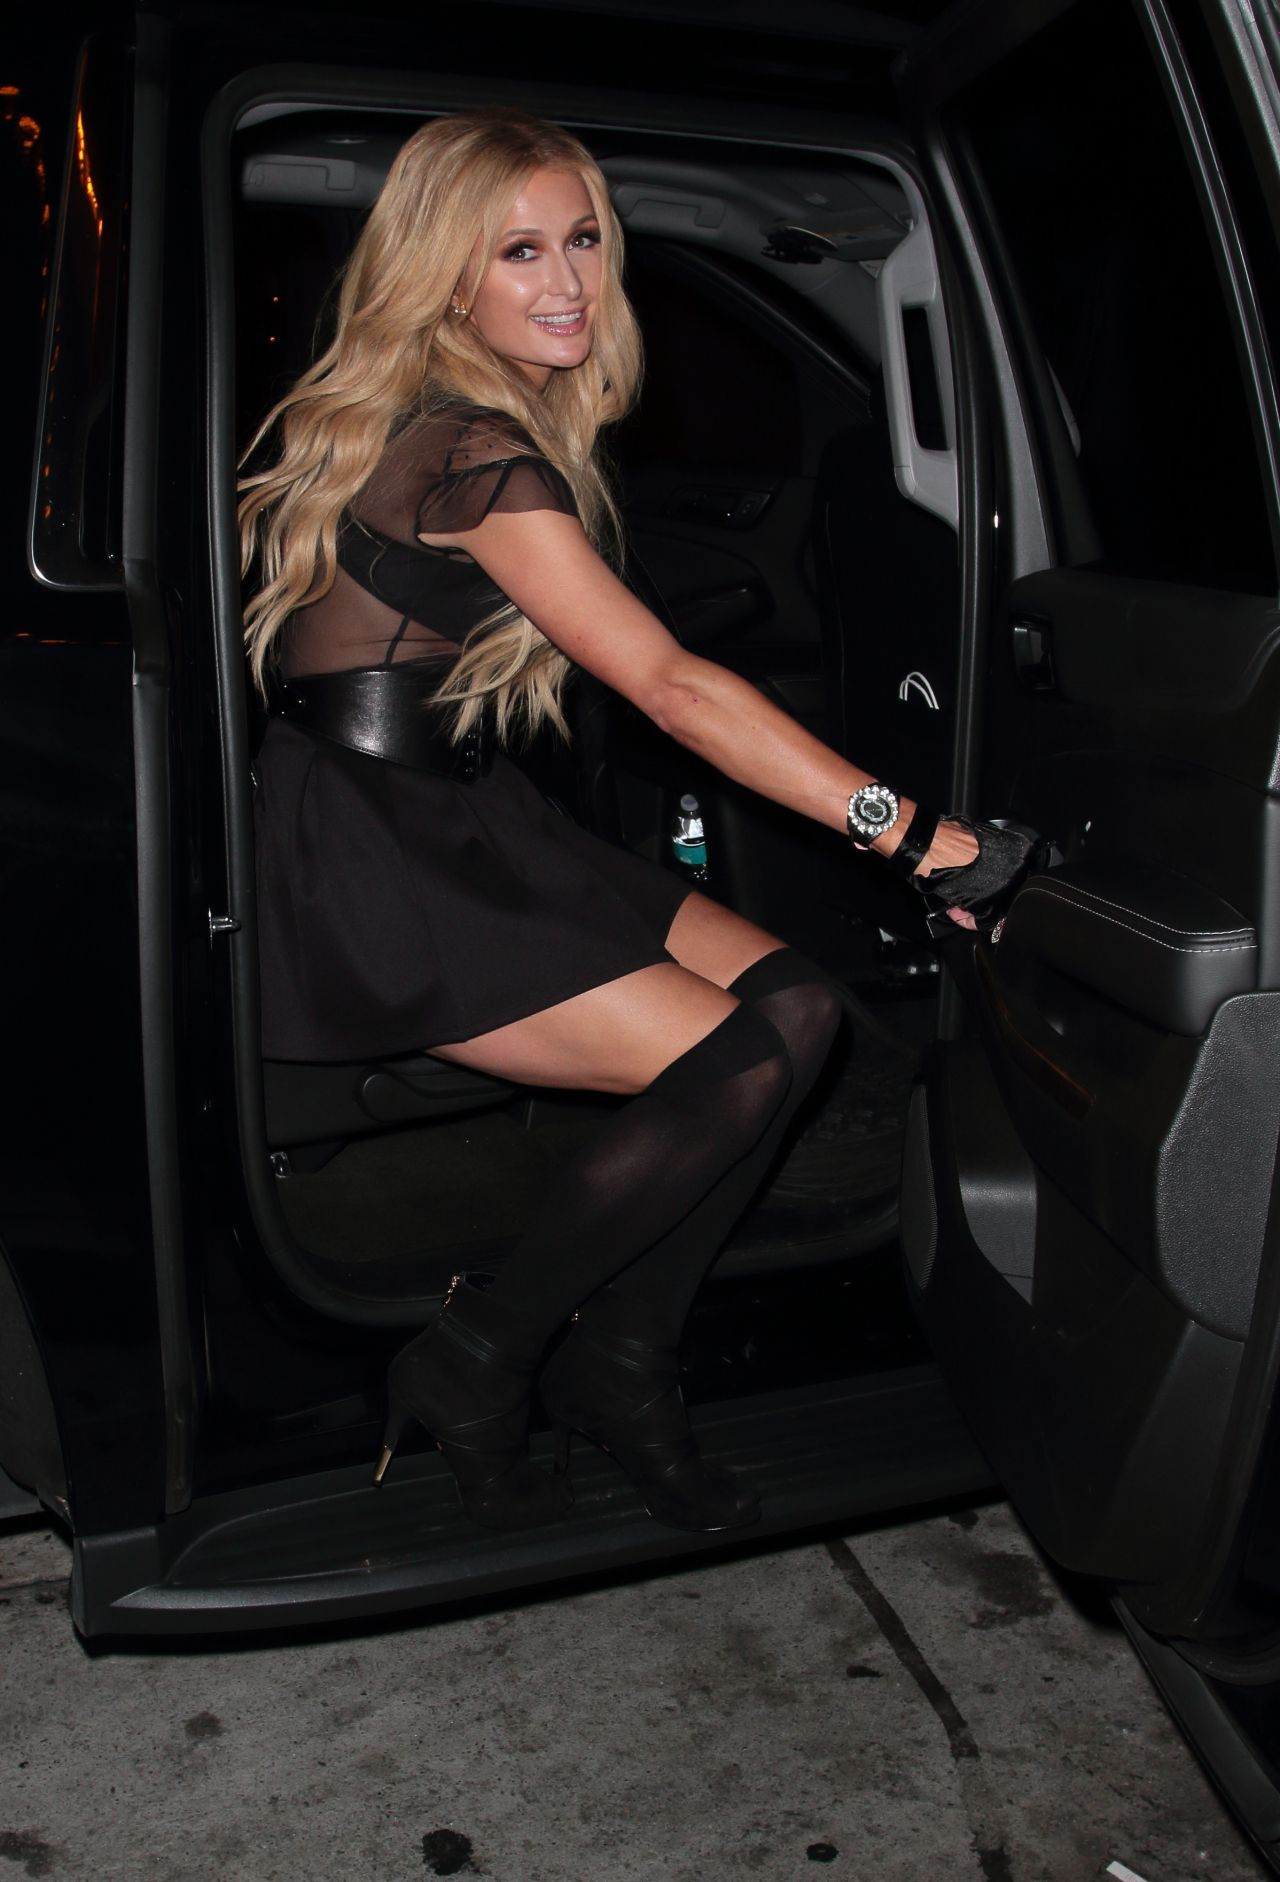 Celebs caught pantyless! Pics Celebs caught pantyless! Paris hilton getting out of car photo